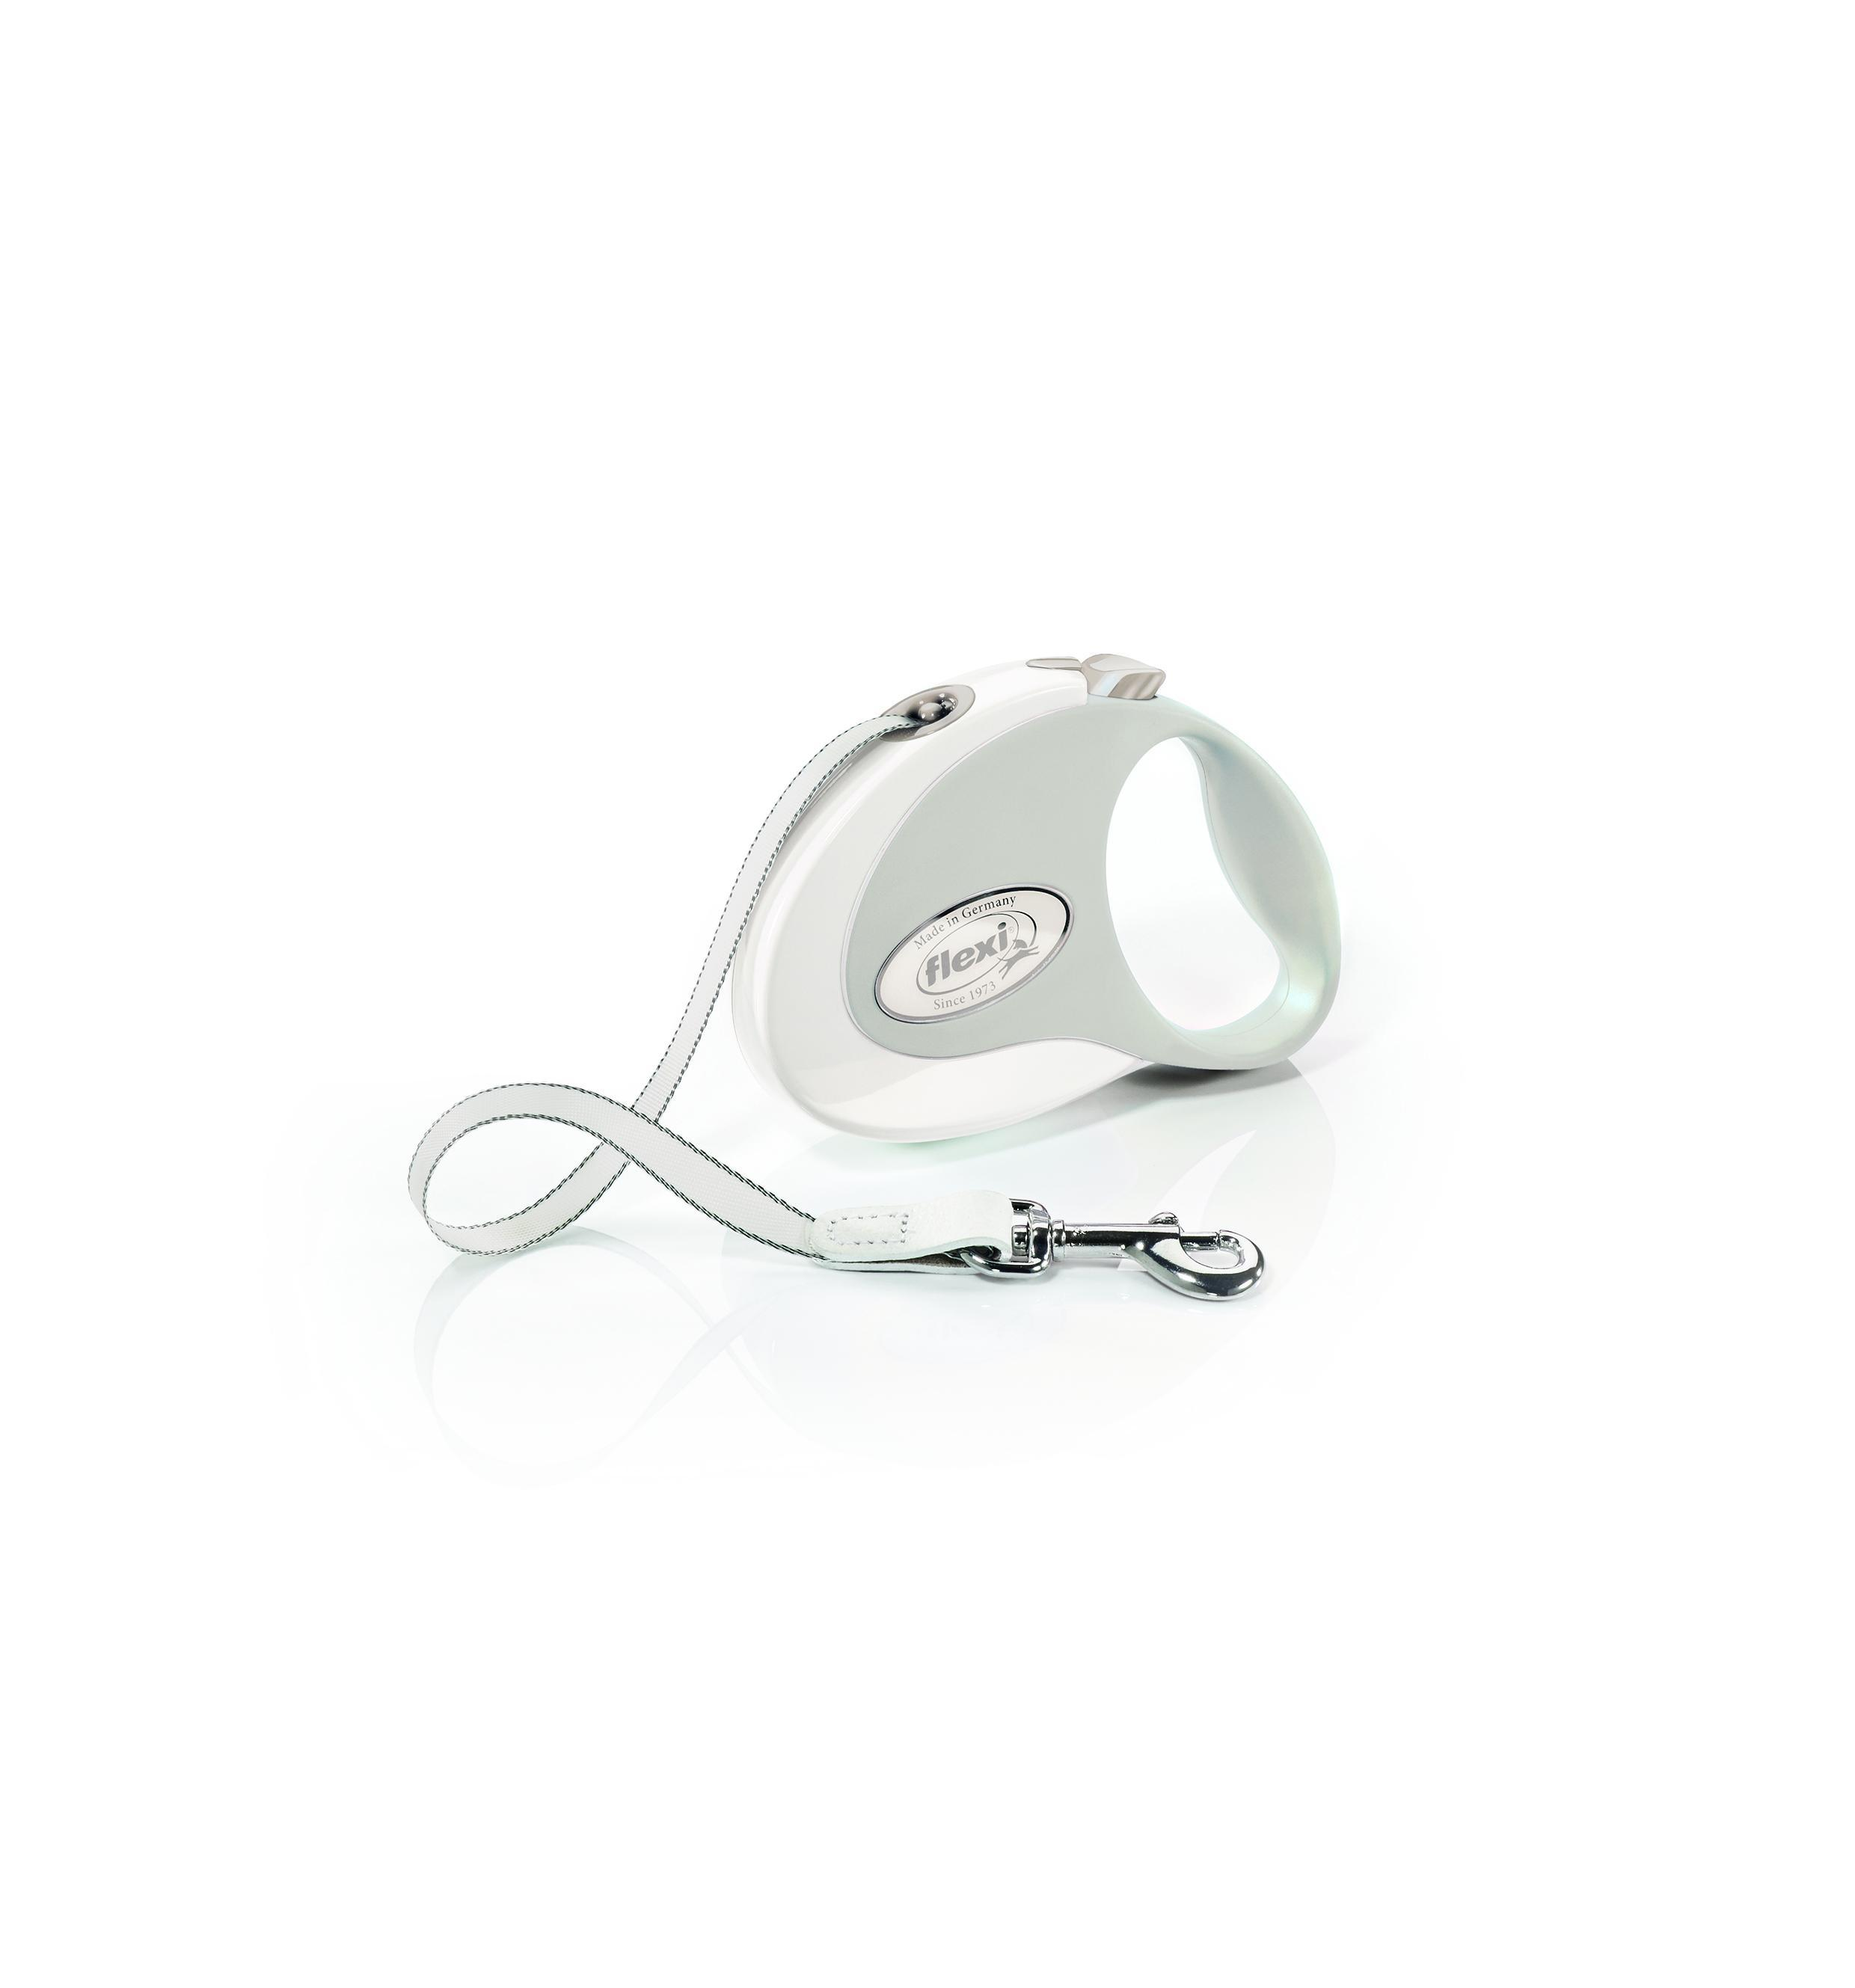 Flexi New Style Tape Dog Leash, White/Gray, Small, 10-ft